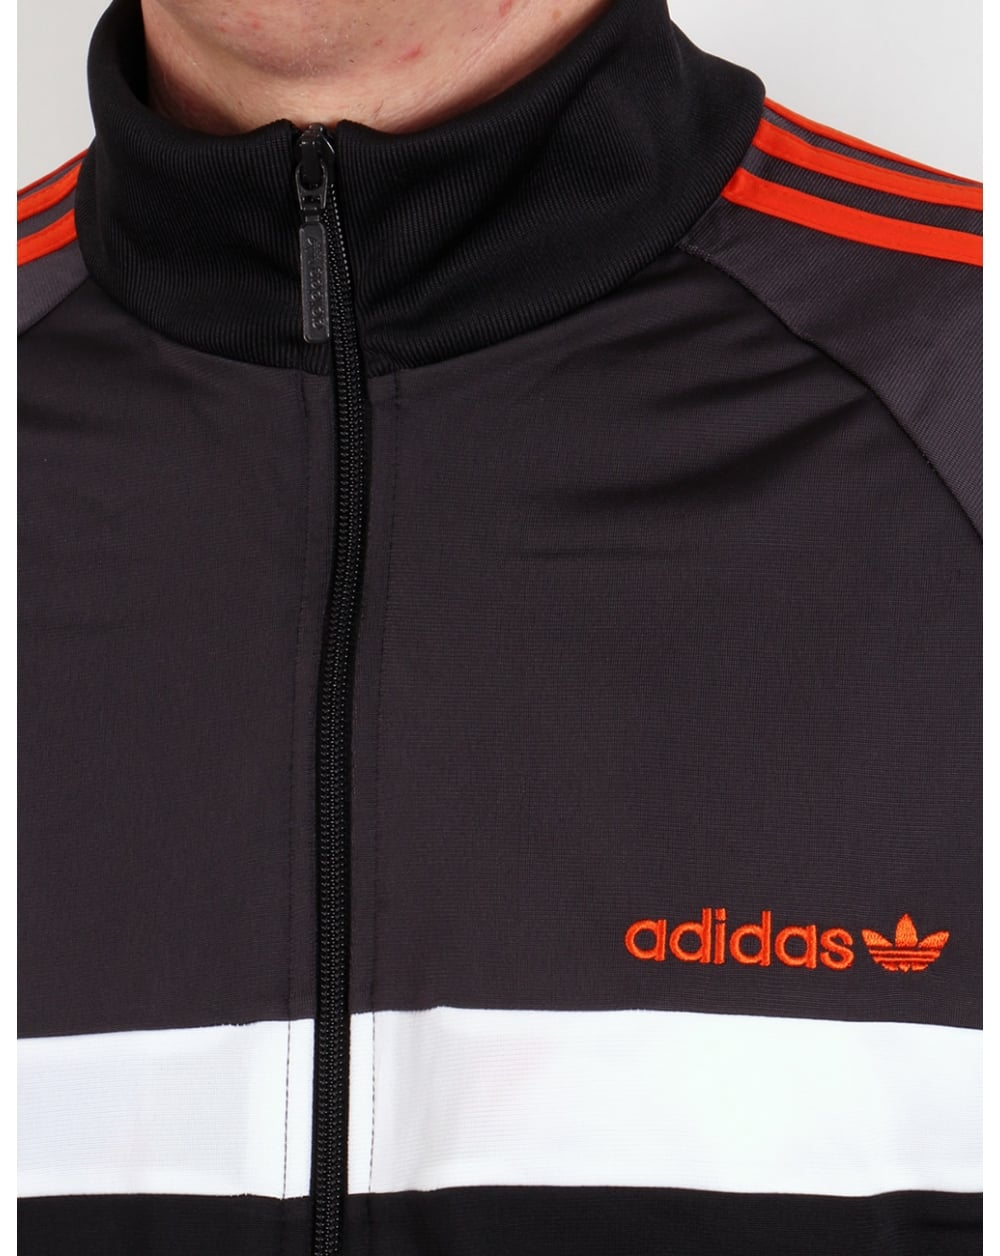 Adidas Originals Itasca Track Top Black Shadow Orange